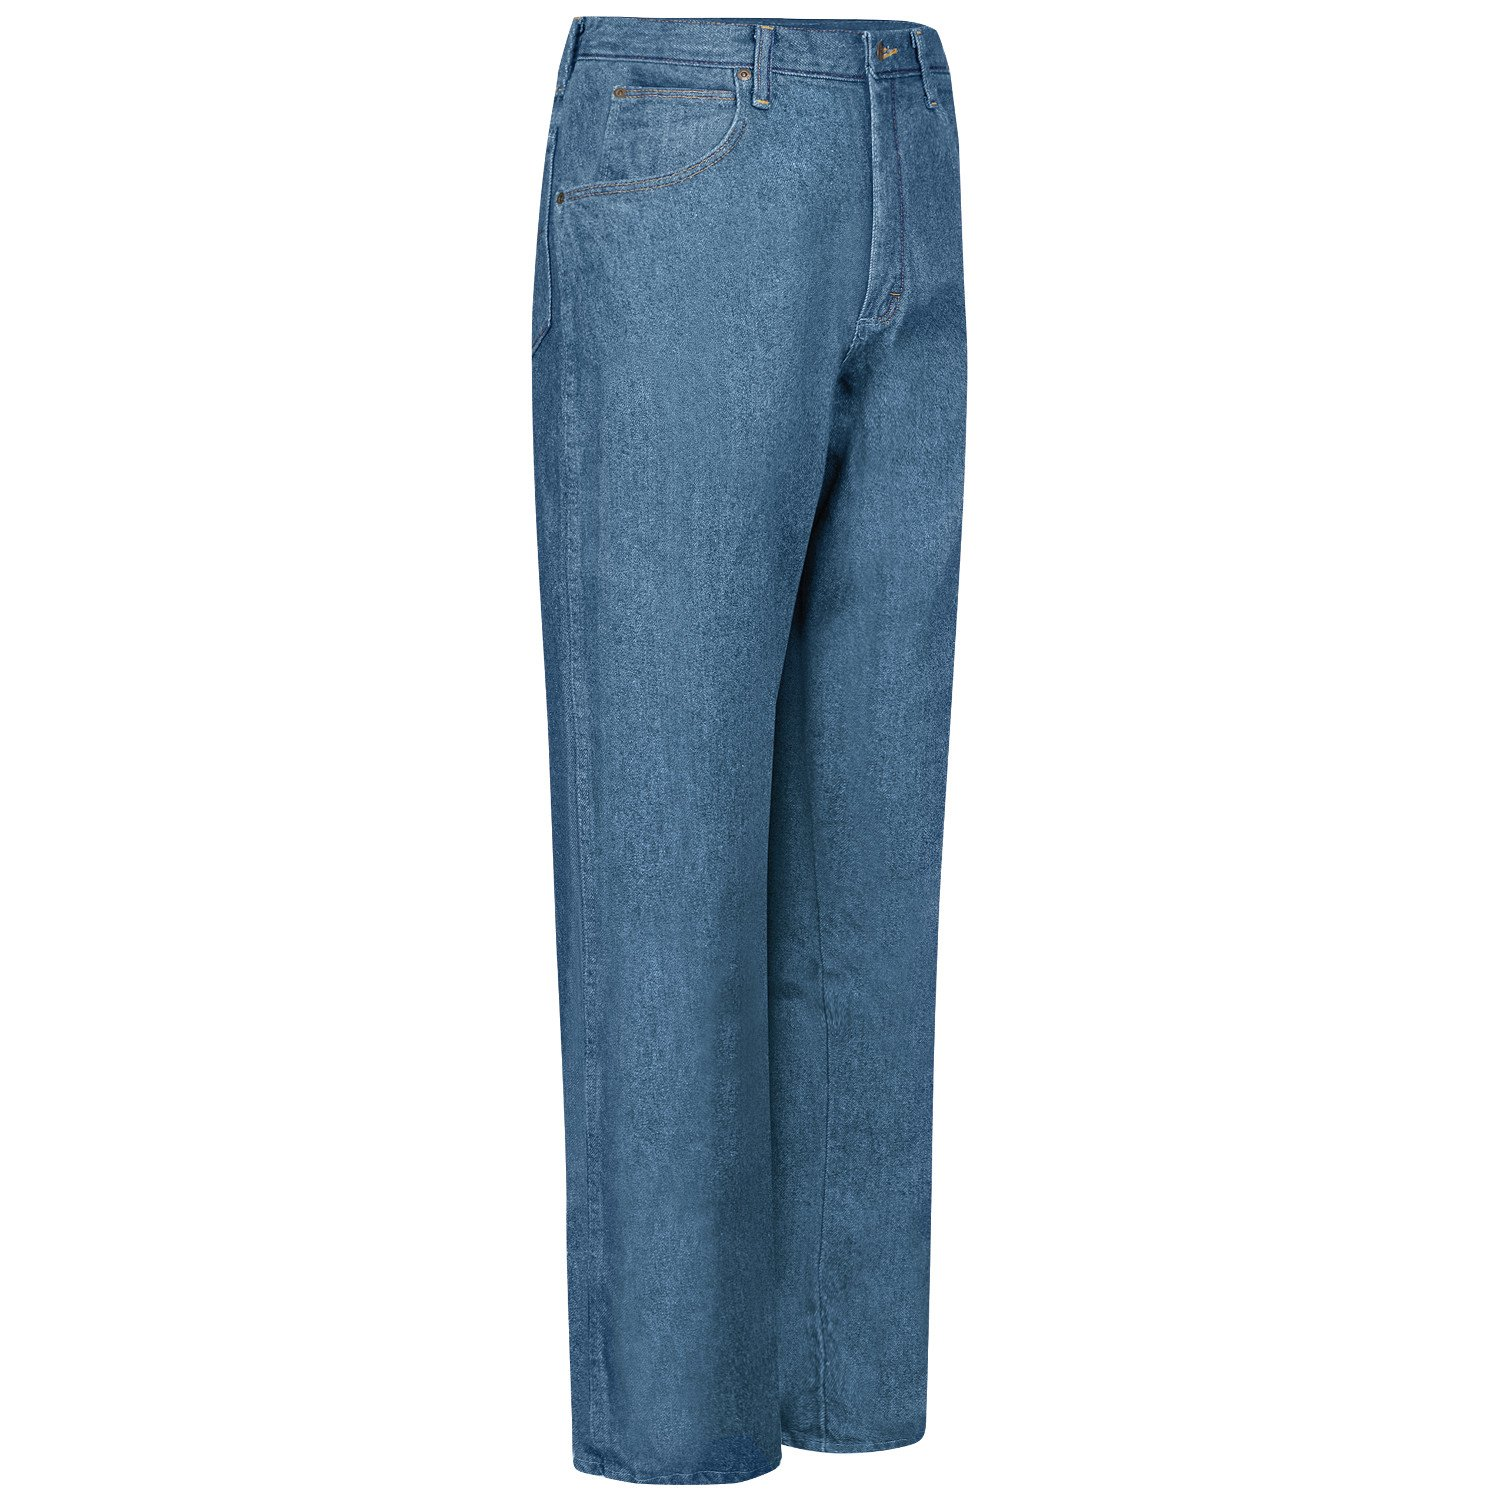 Averills Sharper Uniforms Mens Industrial Relaxed Fitted Jean